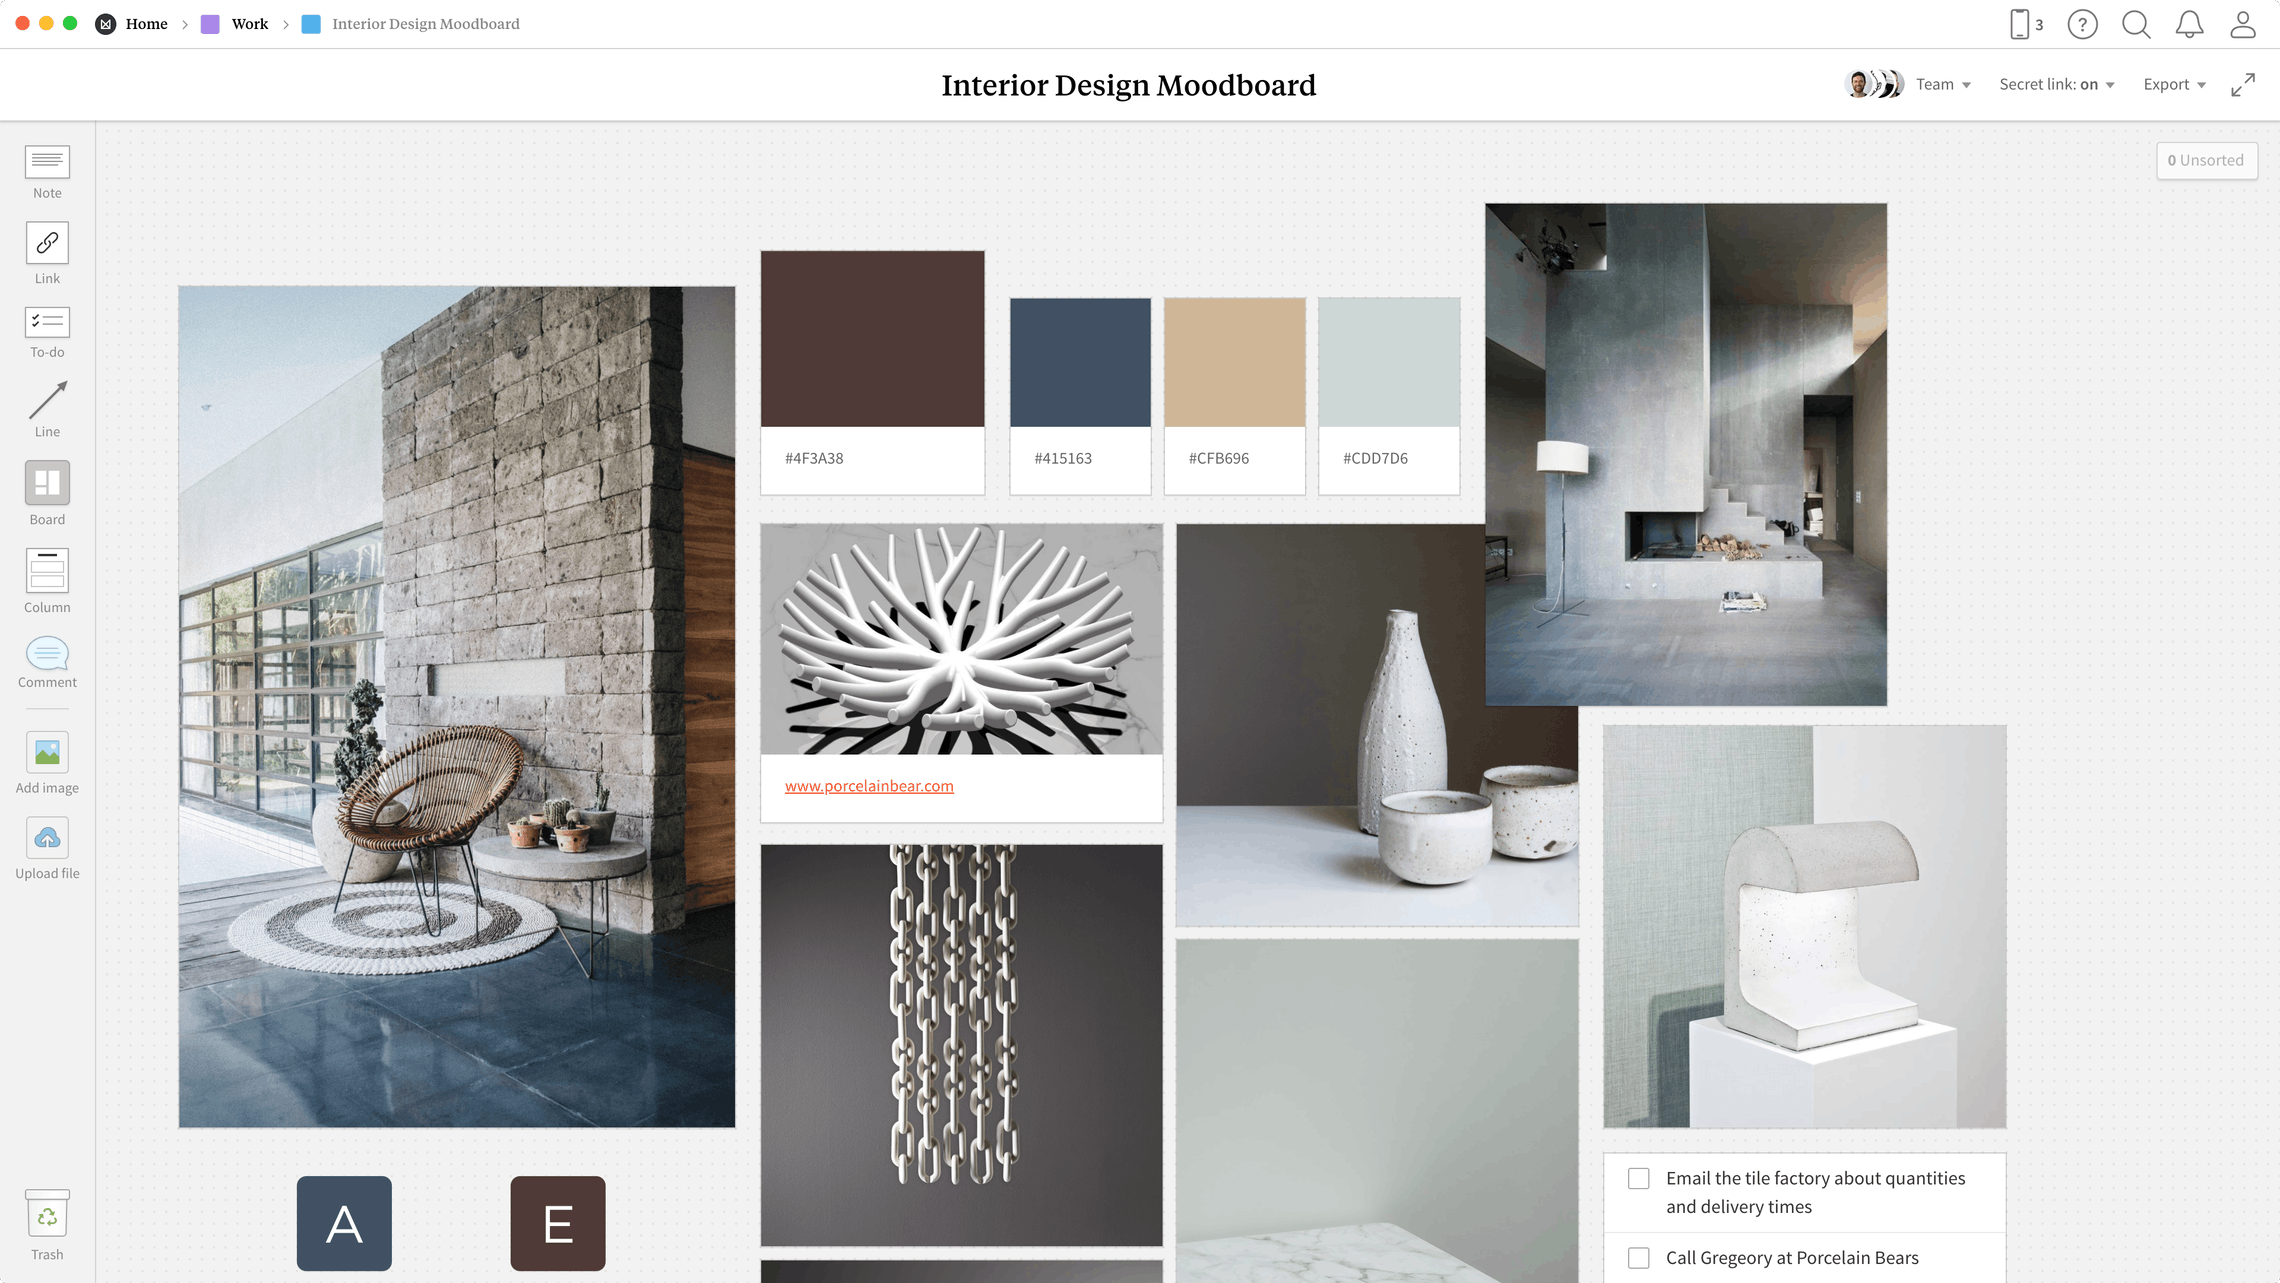 Interior Design Moodboard Template, within the Milanote app